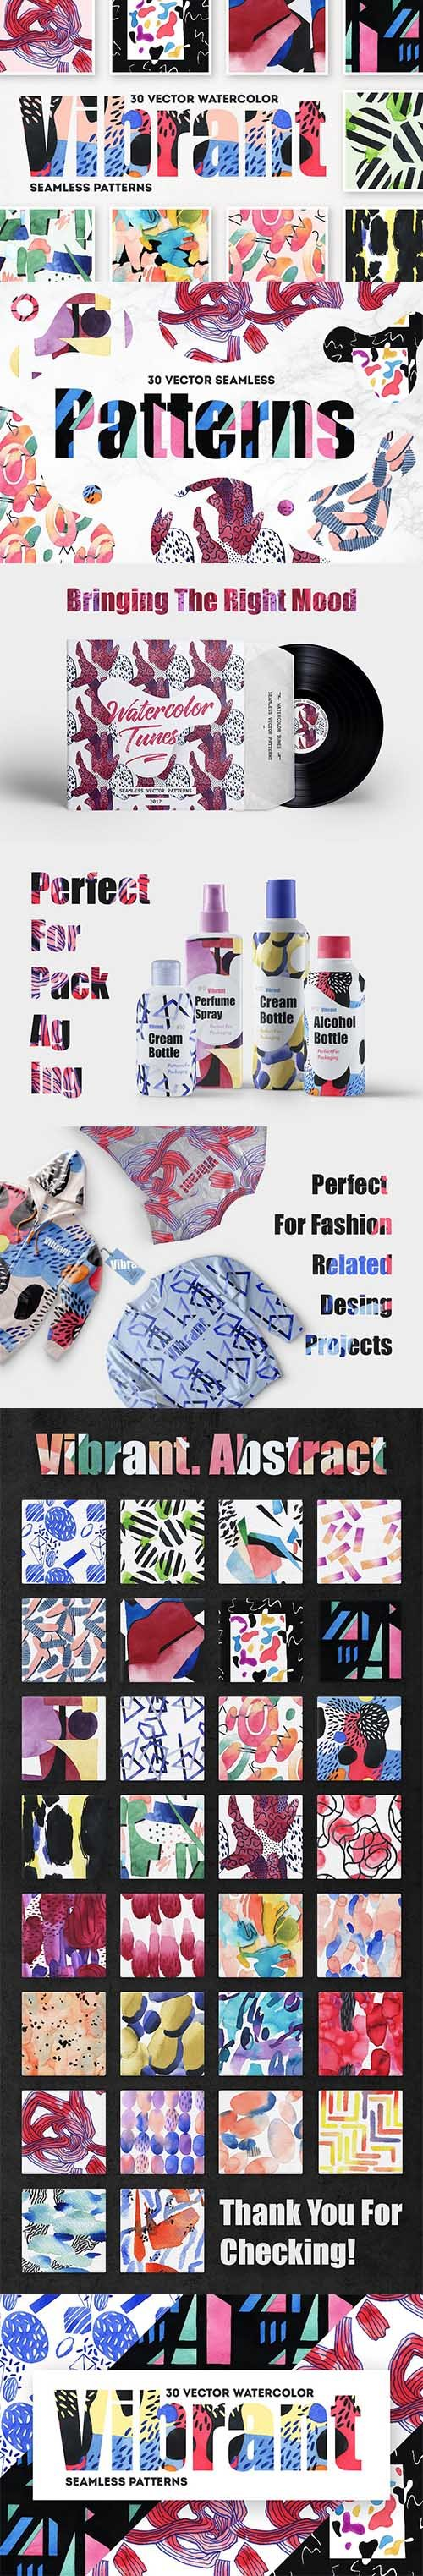 Vibrant Watercolor Patterns - CM 1374638